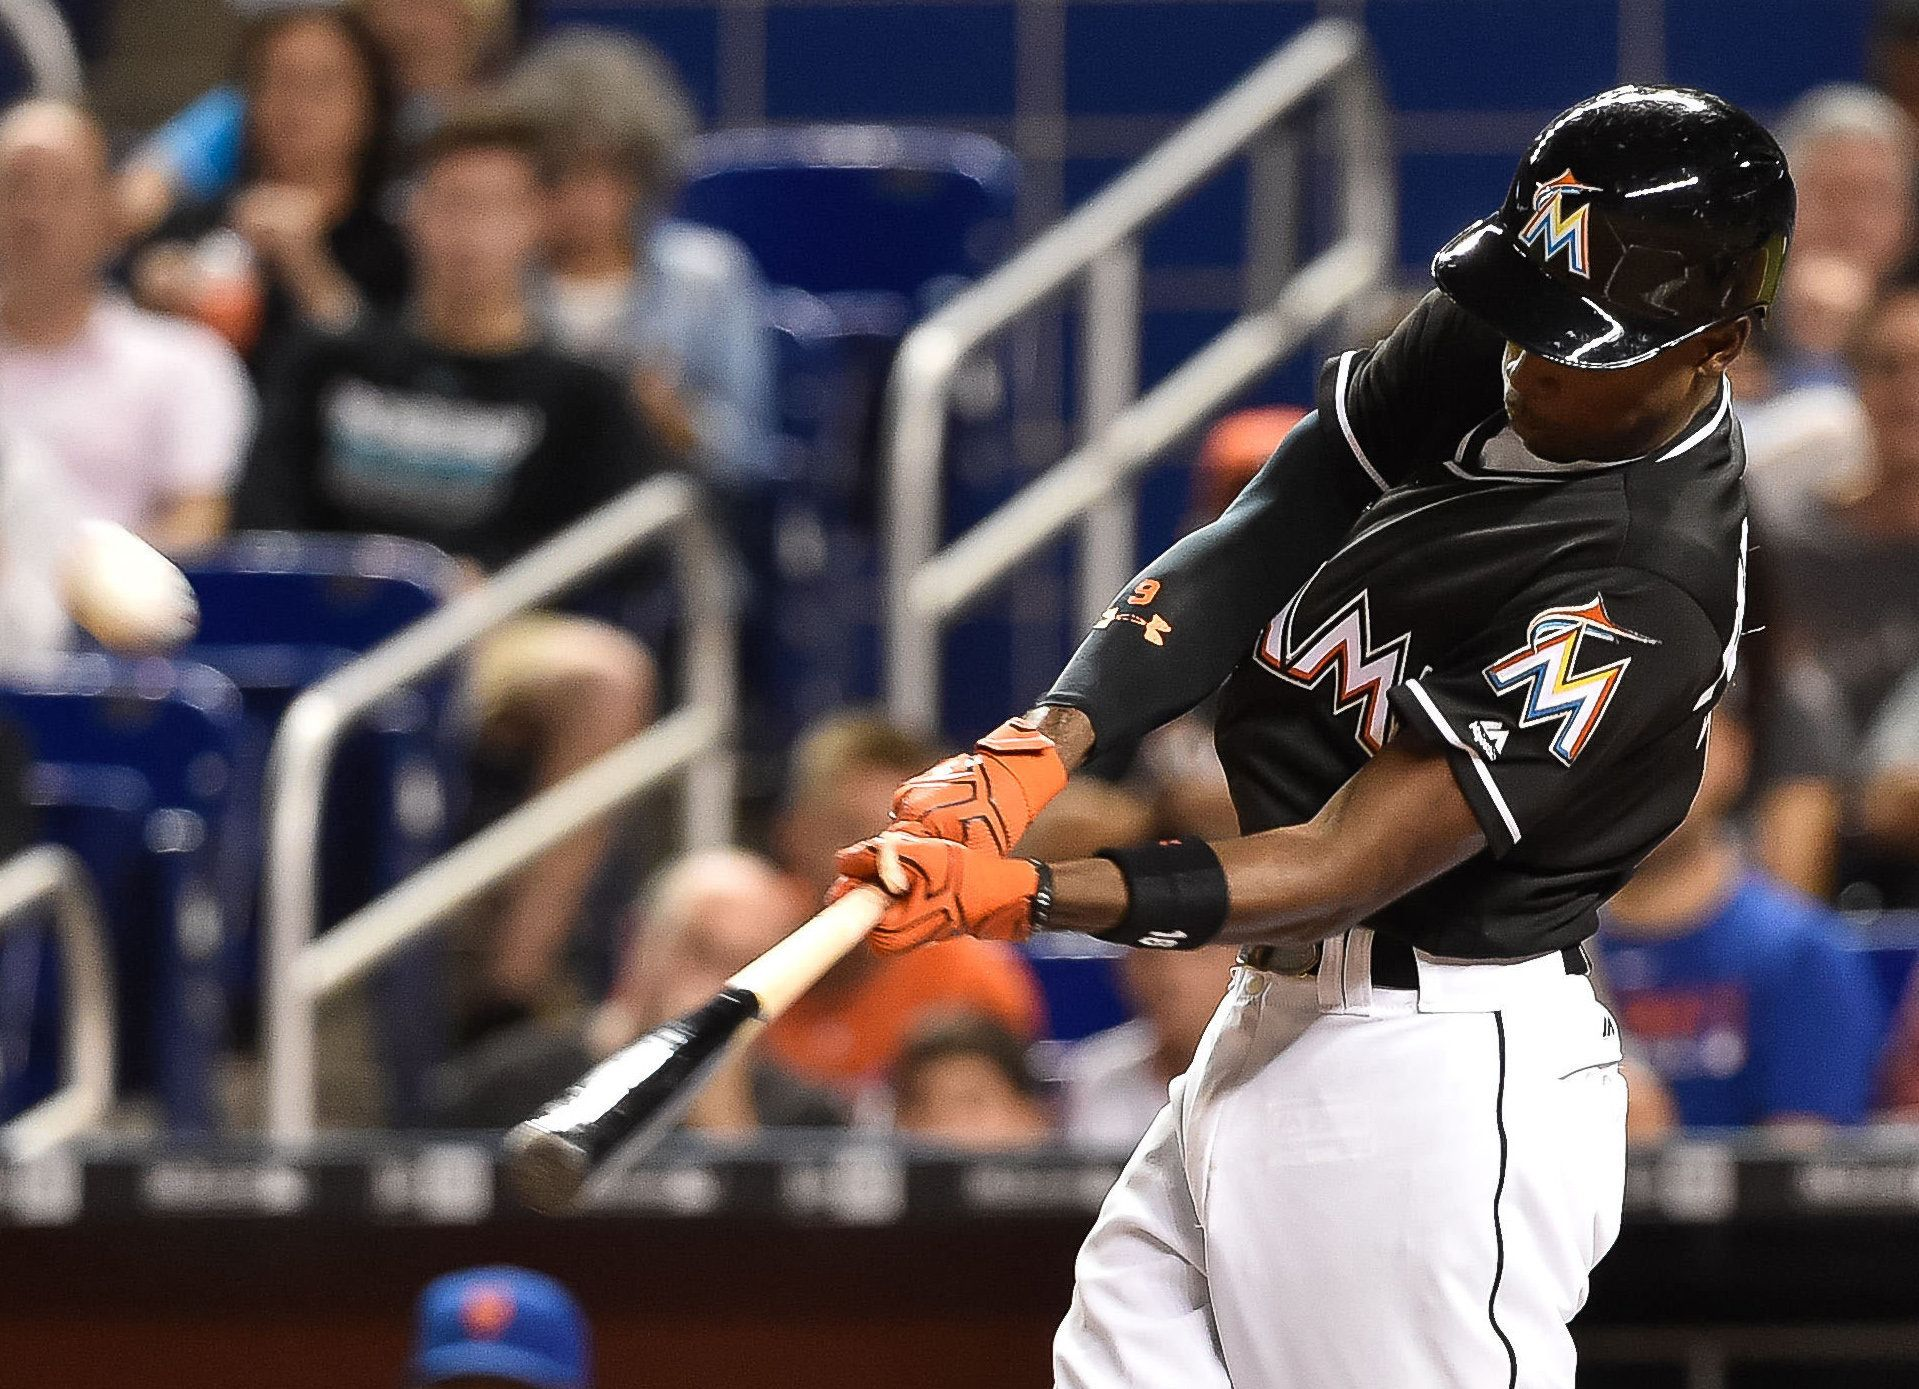 Miami Marlins second baseman Dee Gordon connects for a solo home run during the first inning against...